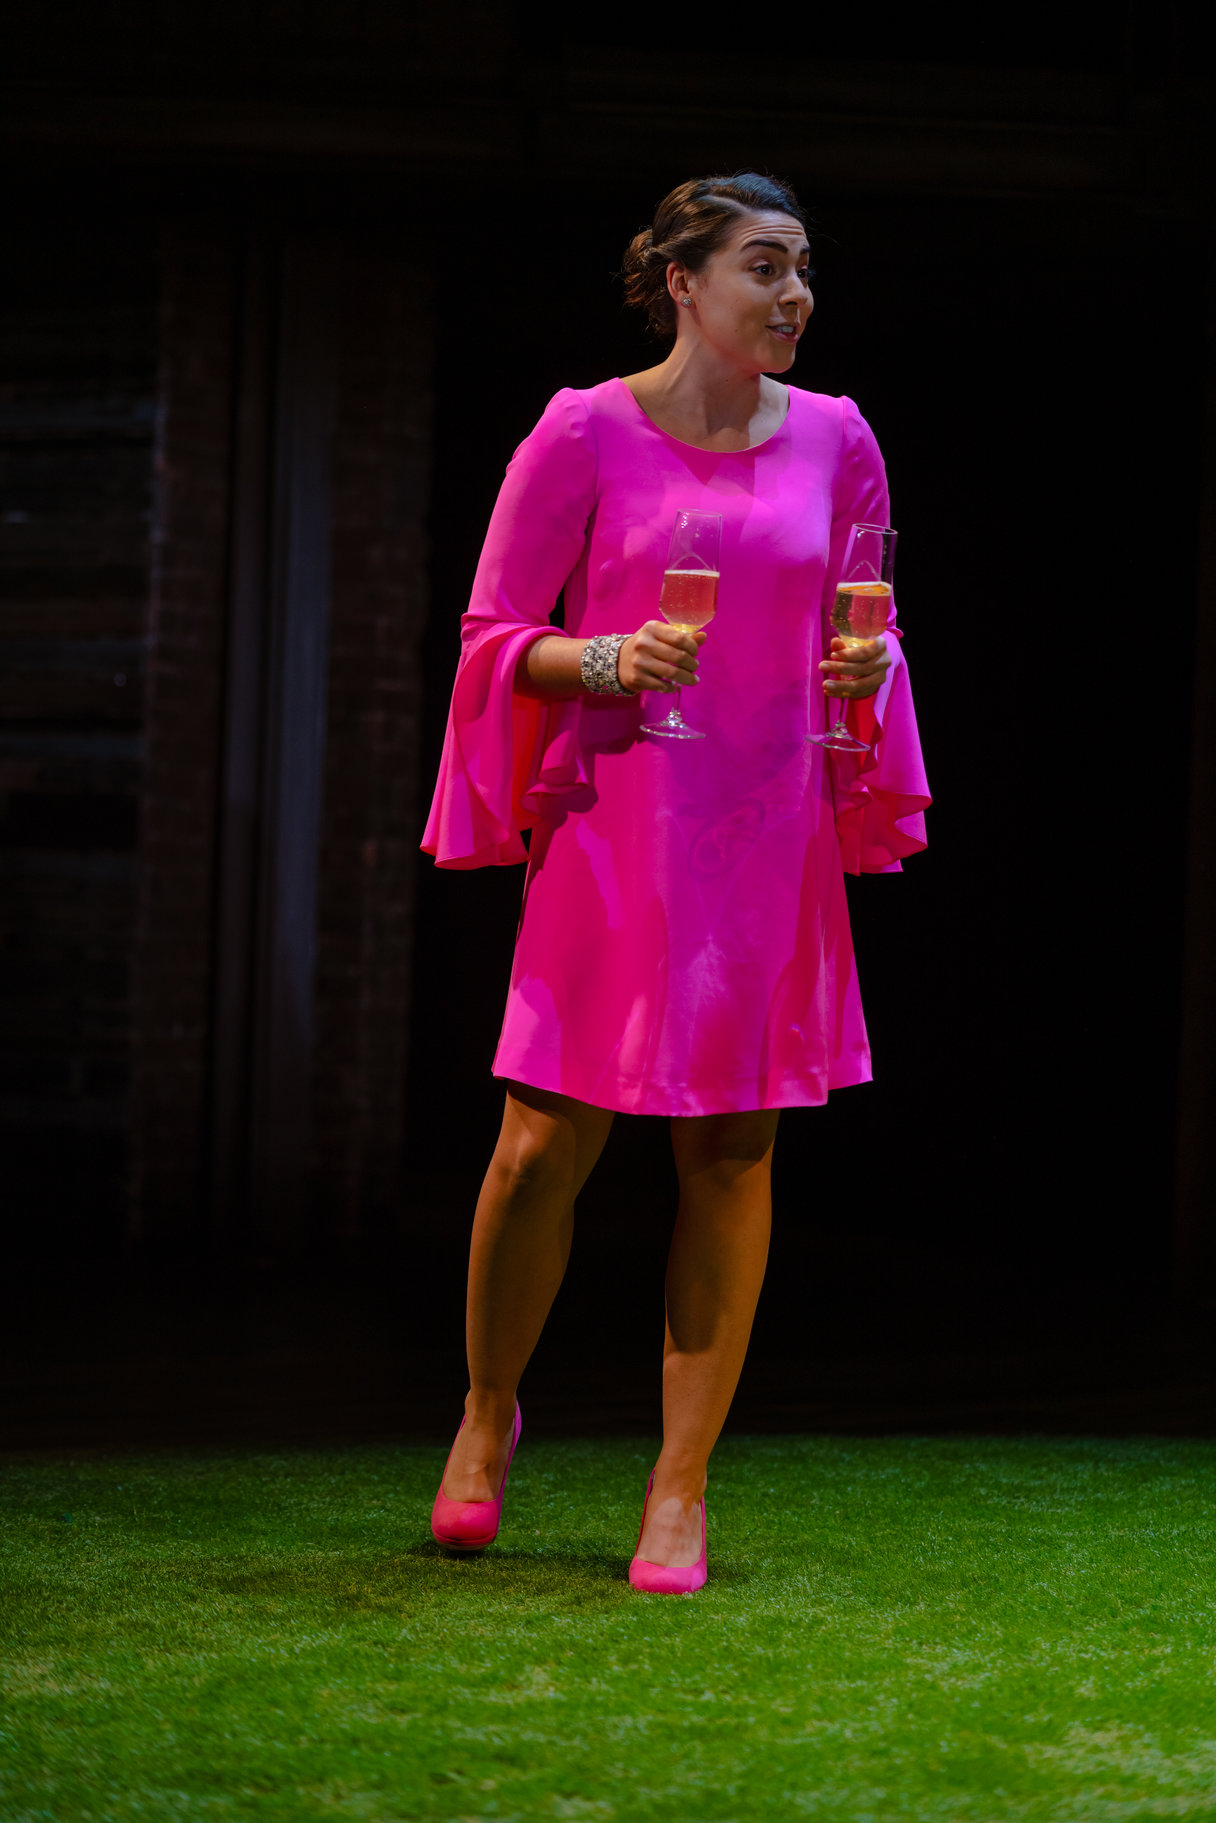 A woman in a bright pink dress holds two champagne flutes.